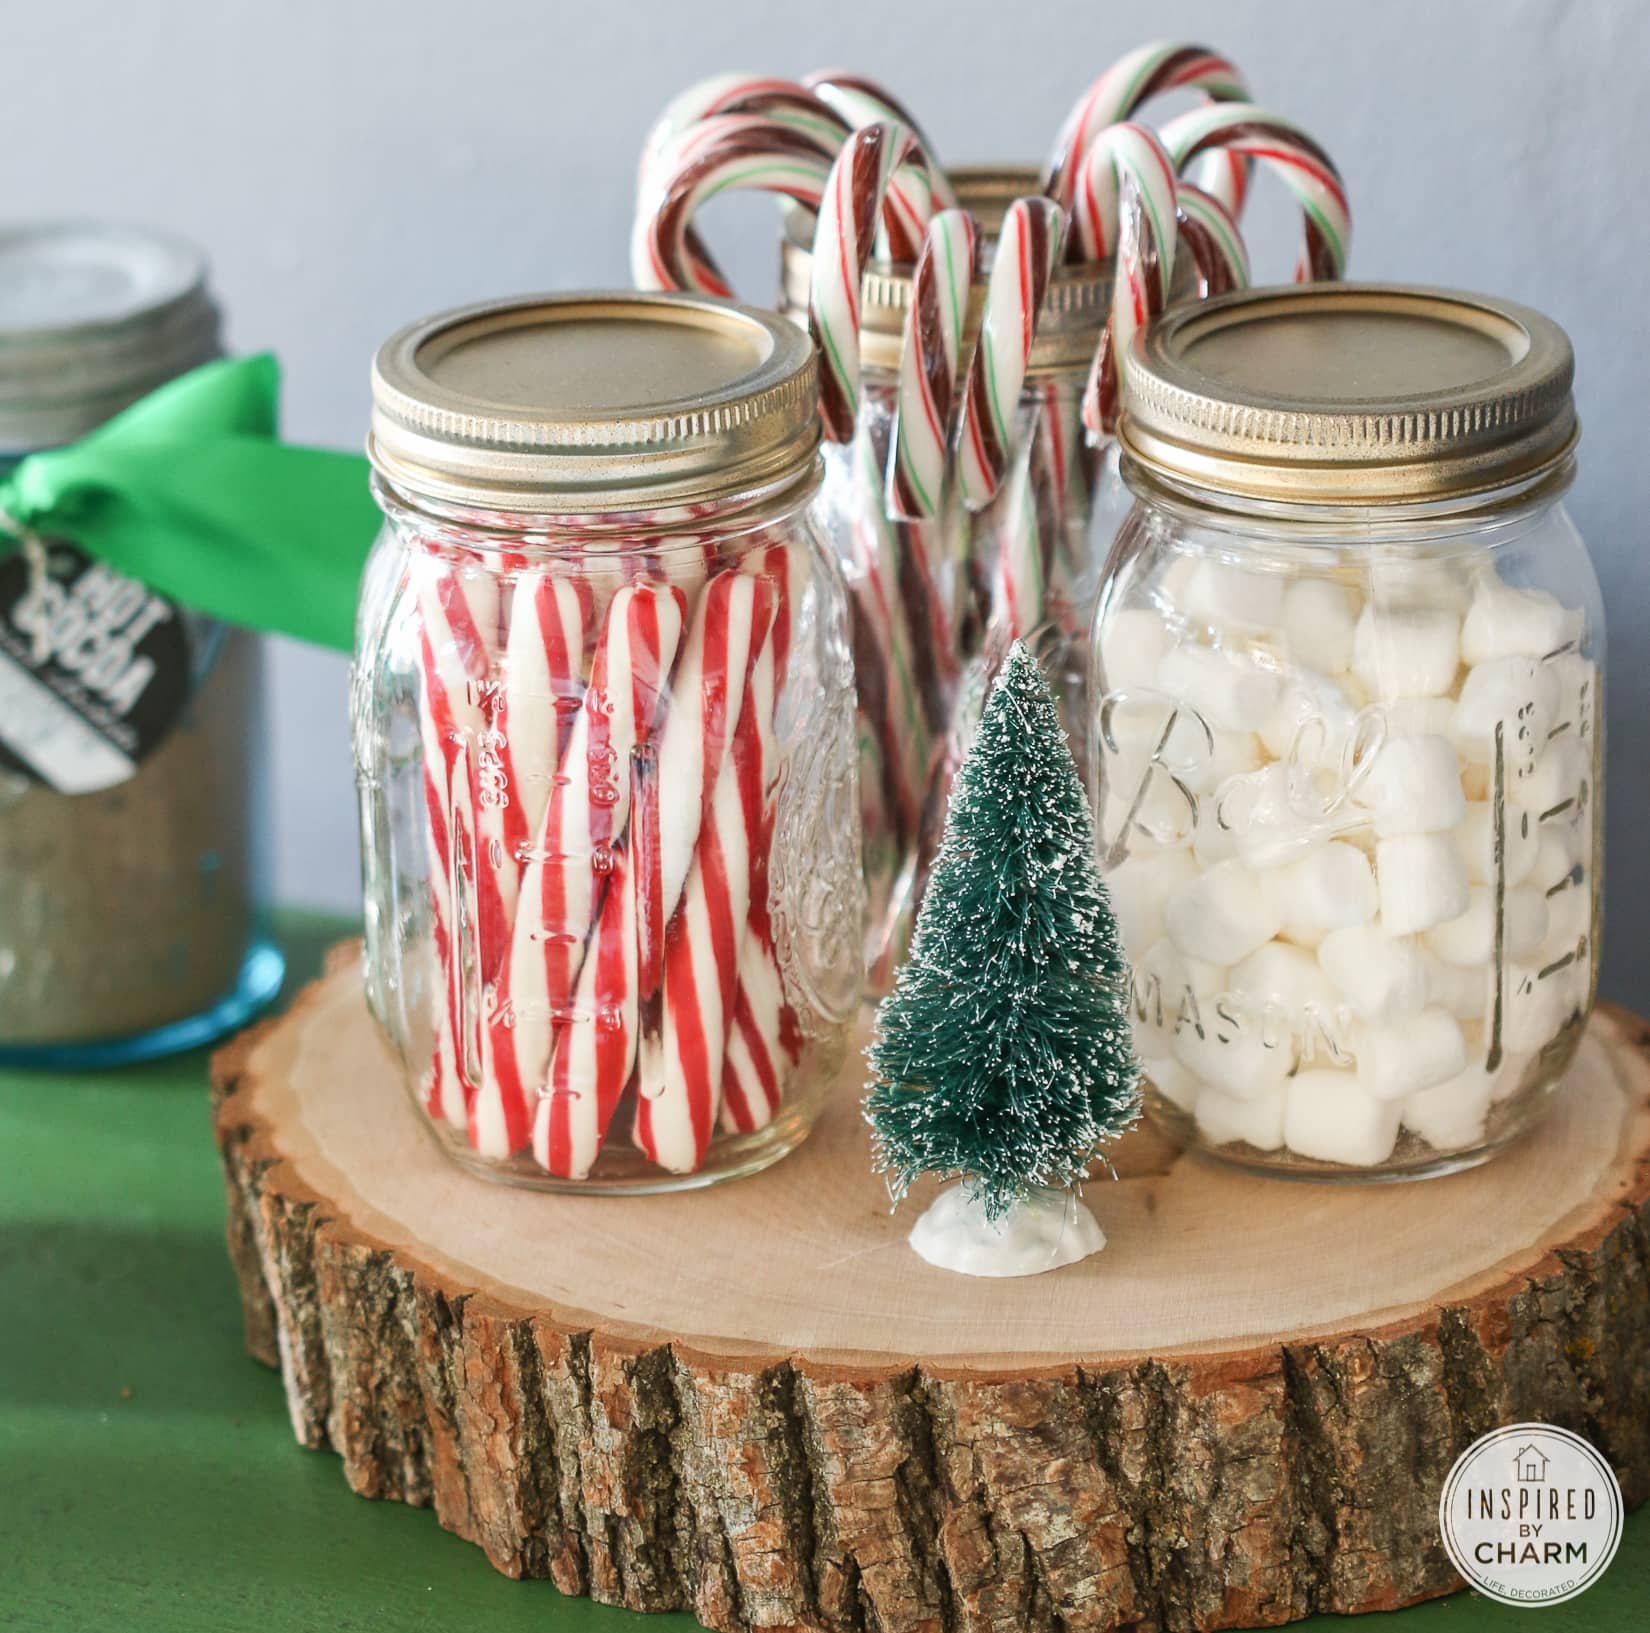 Hot Cocoa Bar and Homemade Recipes - Inspired by Charm